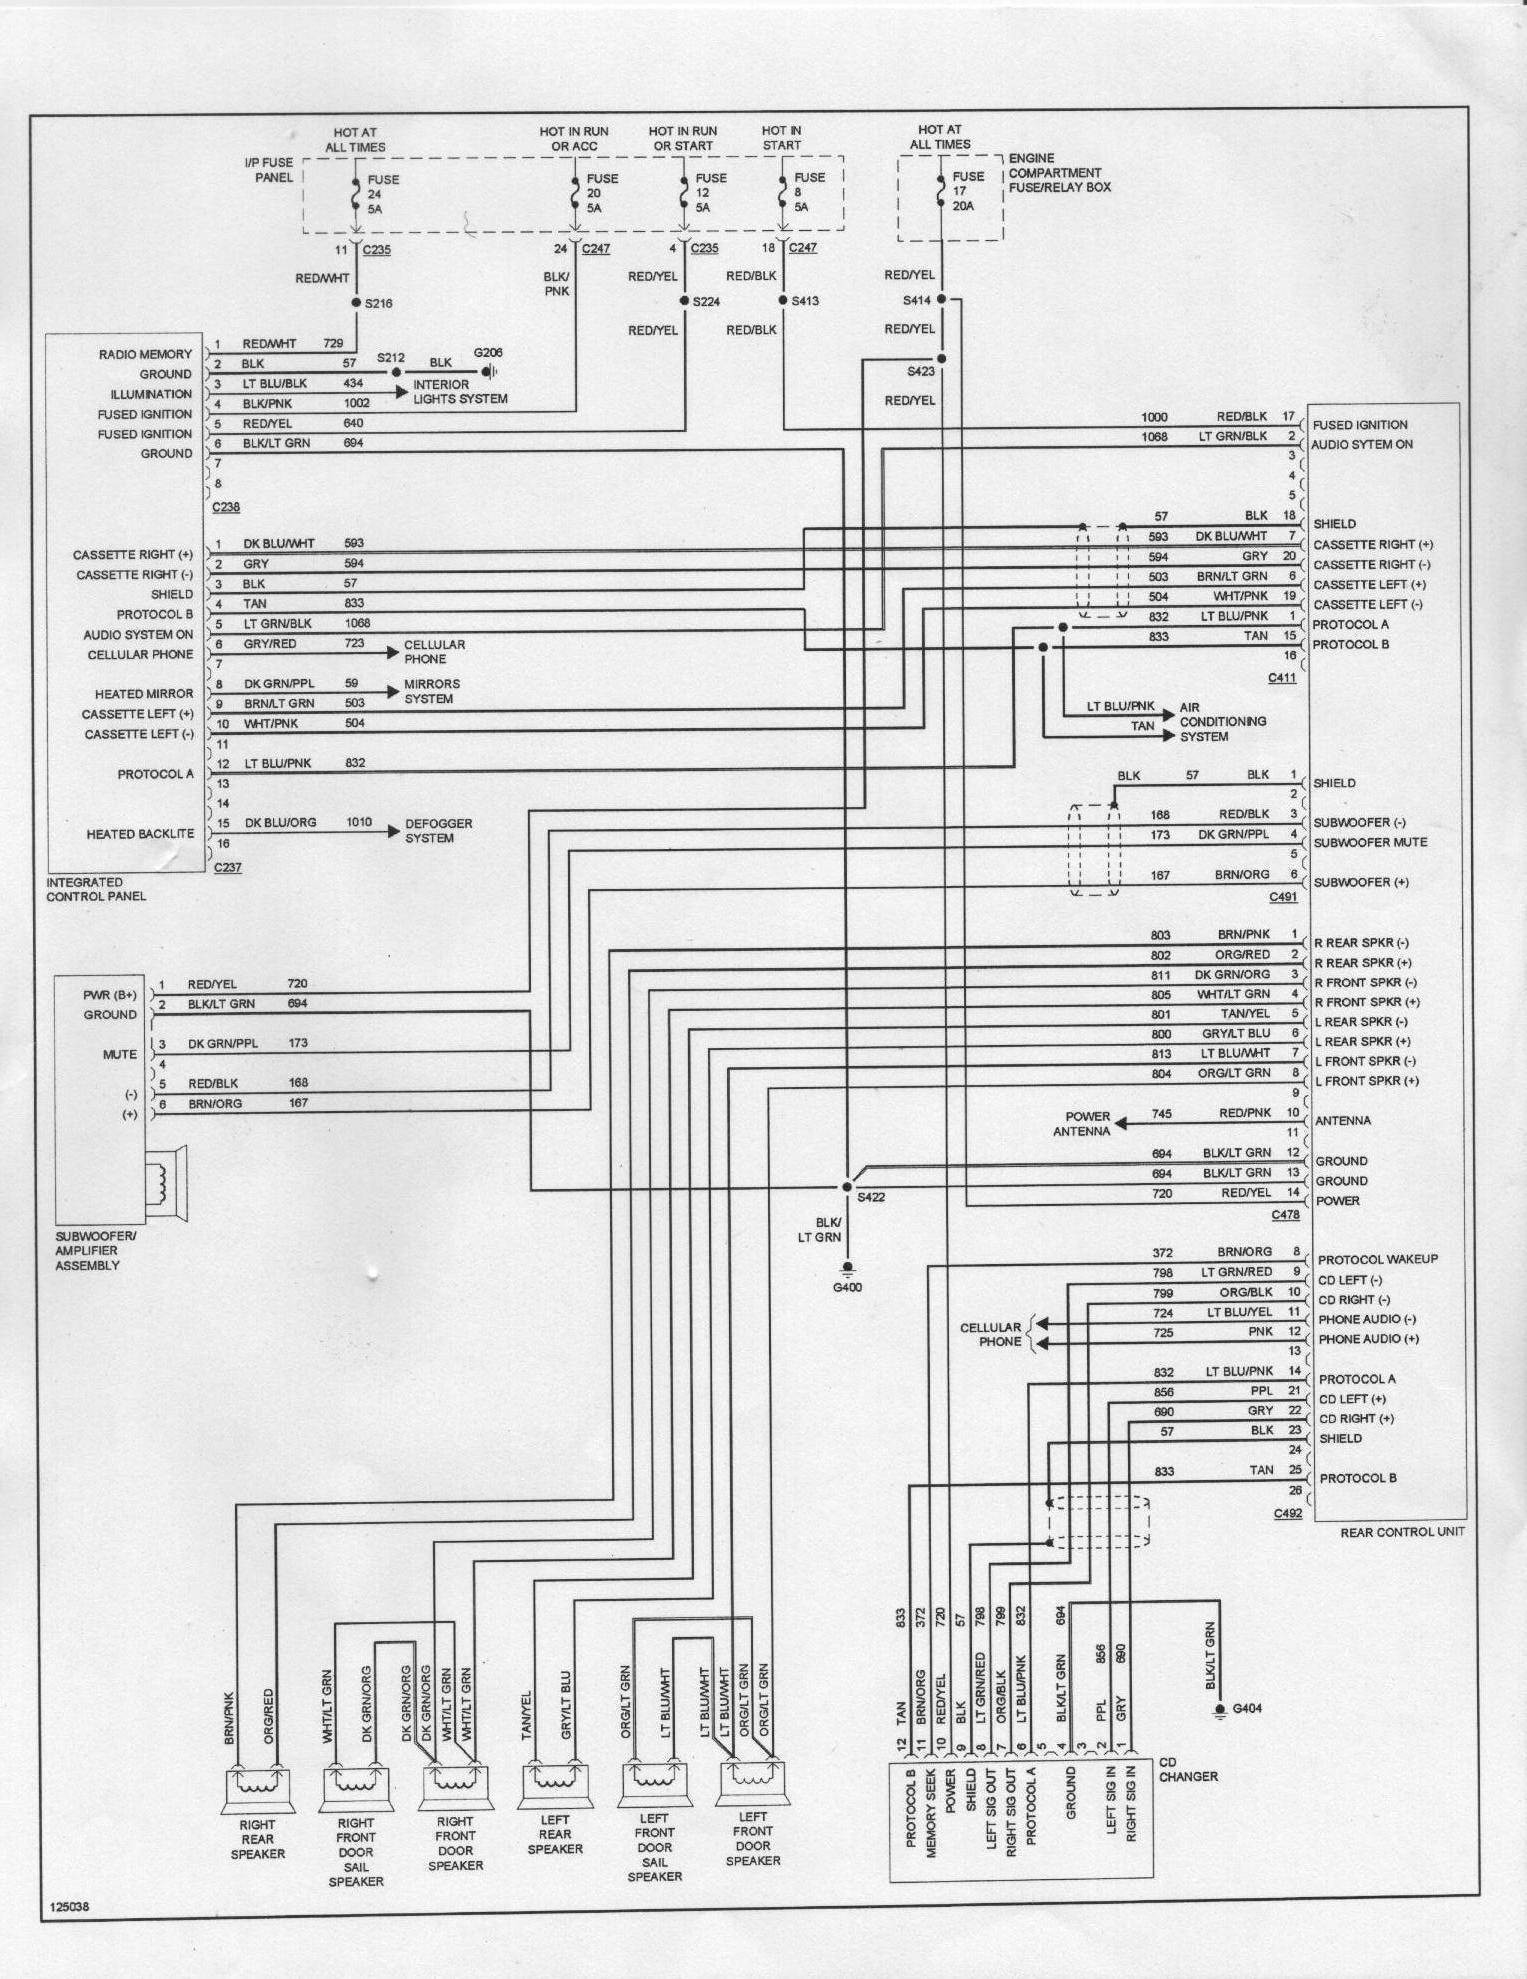 2001 ford Taurus Engine Parts Diagram 1995 ford Taurus Wiring Diagram 2001 Engine Parts Like Of 2001 ford Taurus Engine Parts Diagram